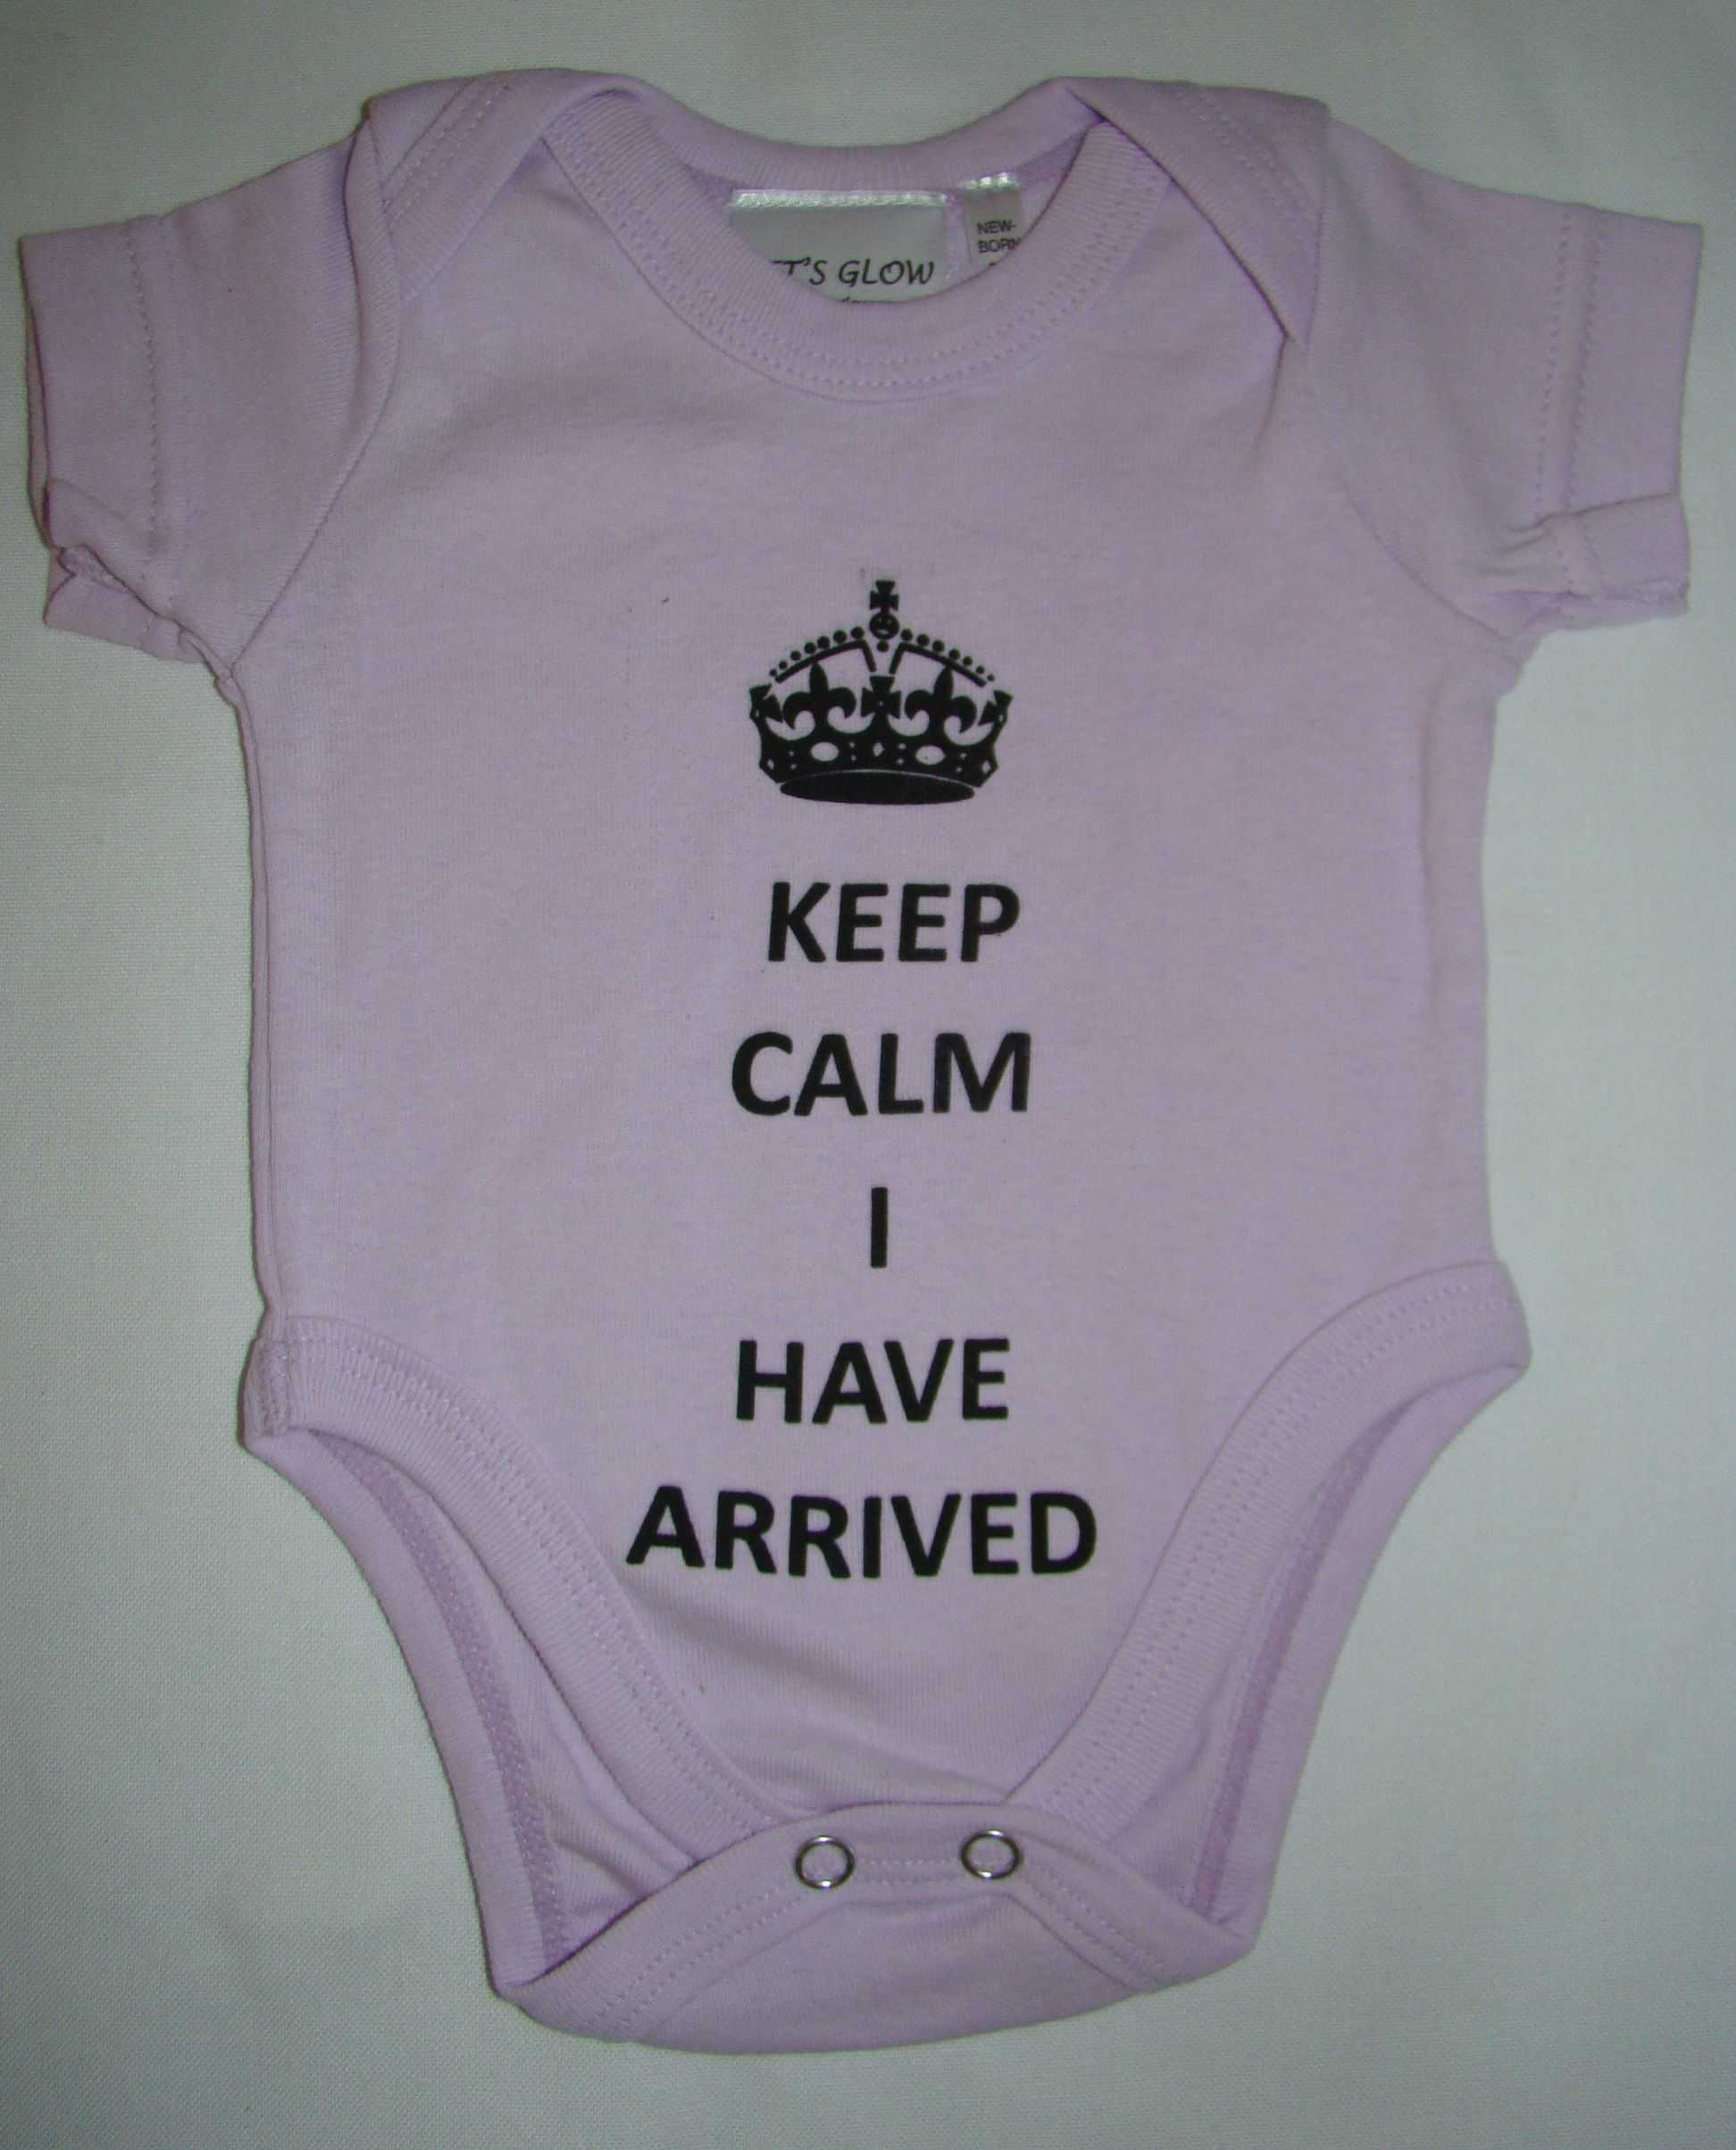 c9421a7a5 Keep Calm - I have arrived. Baby grows with funny logo s in many ...